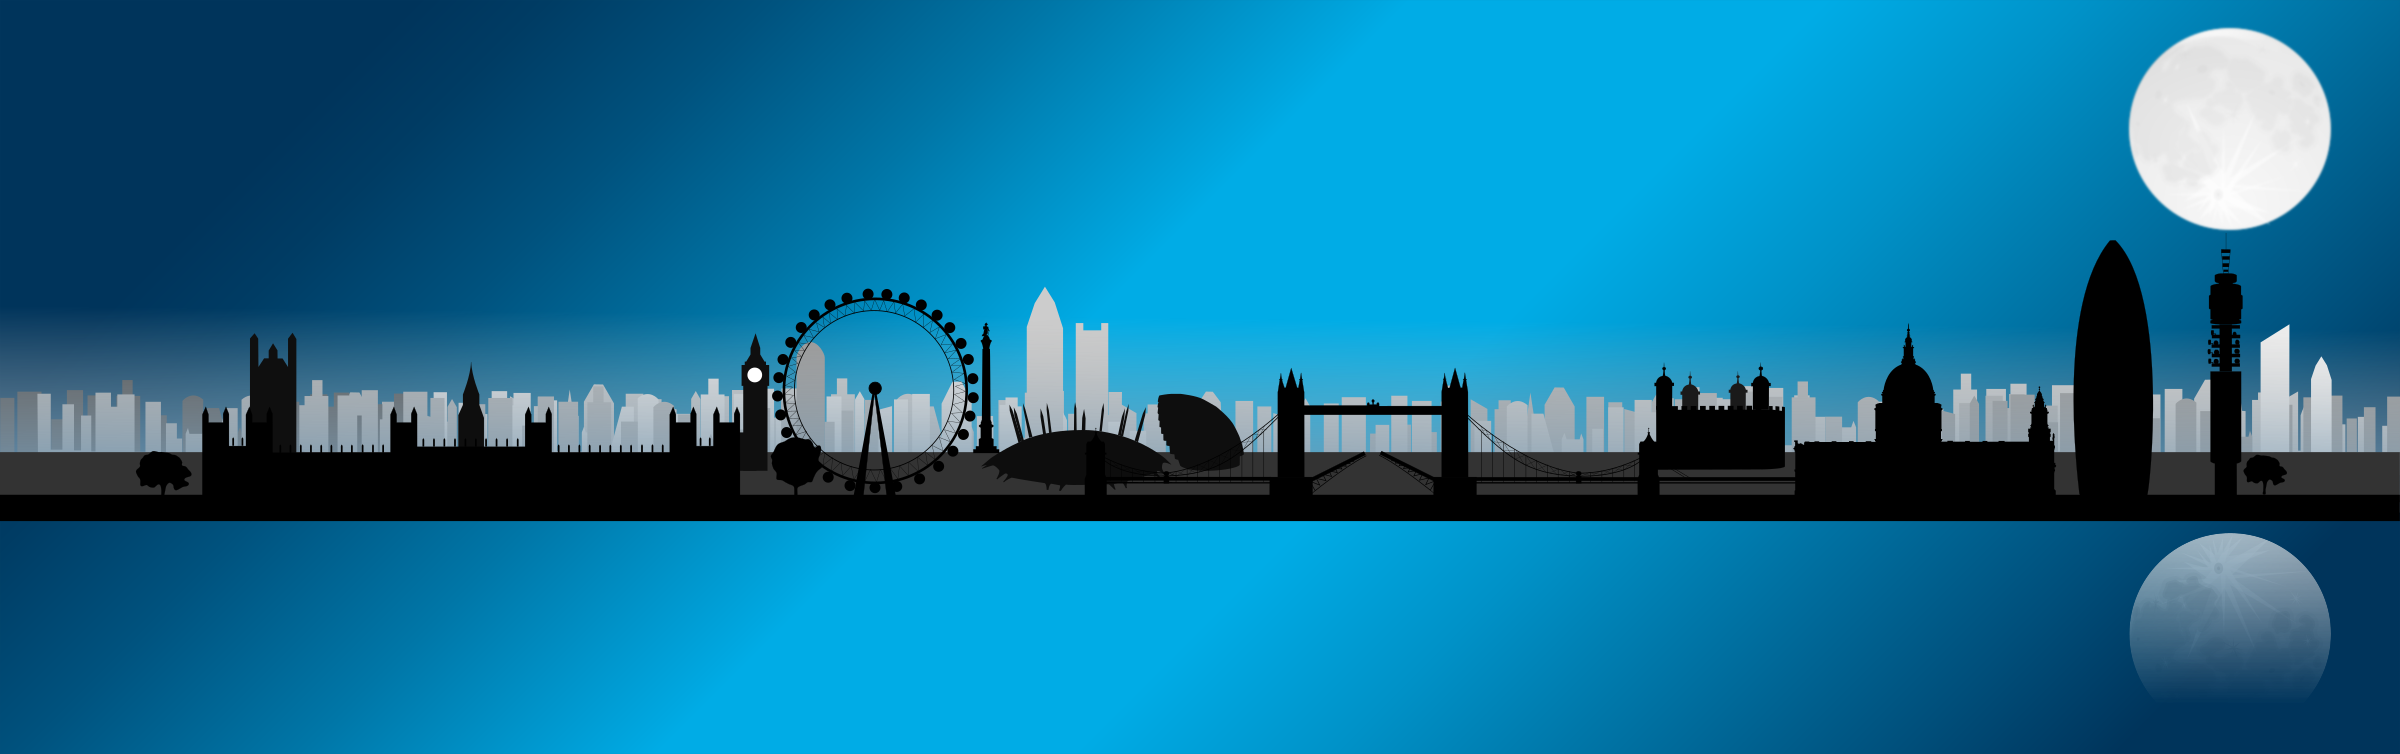 List of synonyms and antonyms of the word london skyline clip art london skyline vector free download altavistaventures Image collections